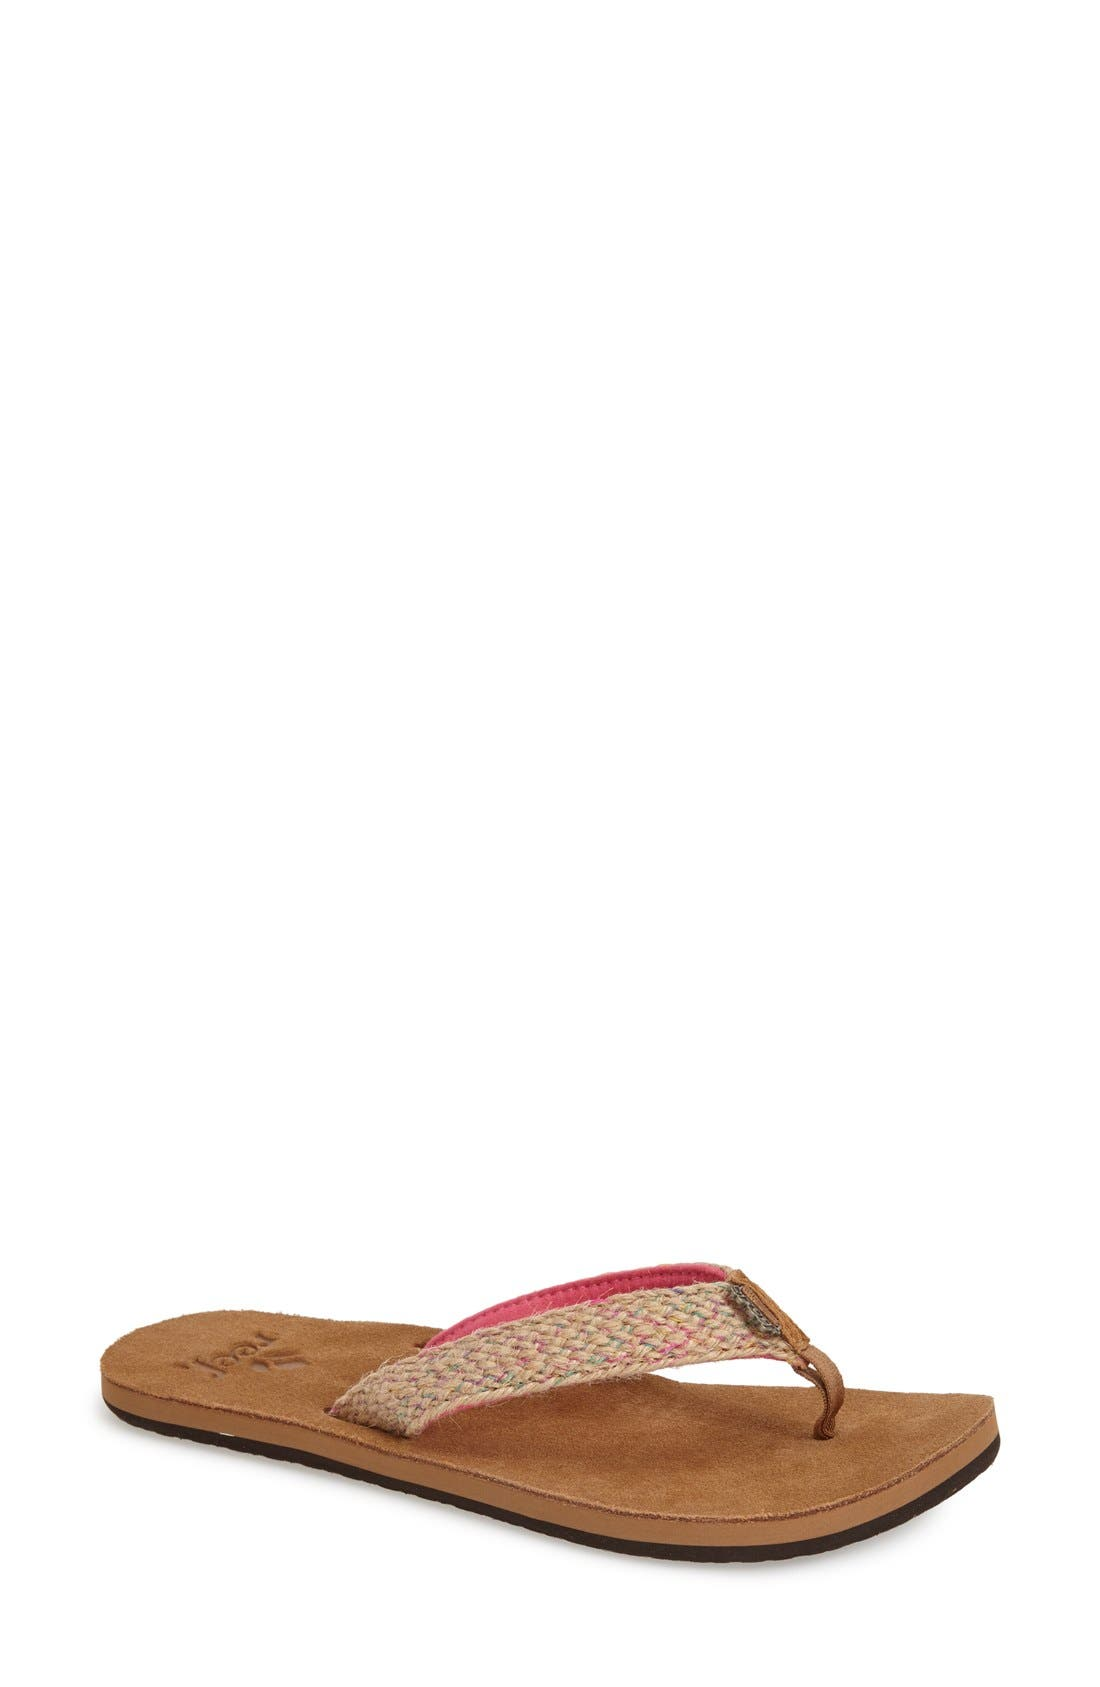 Alternate Image 1 Selected - Reef 'Gypsyhope' Flip Flop (Women)